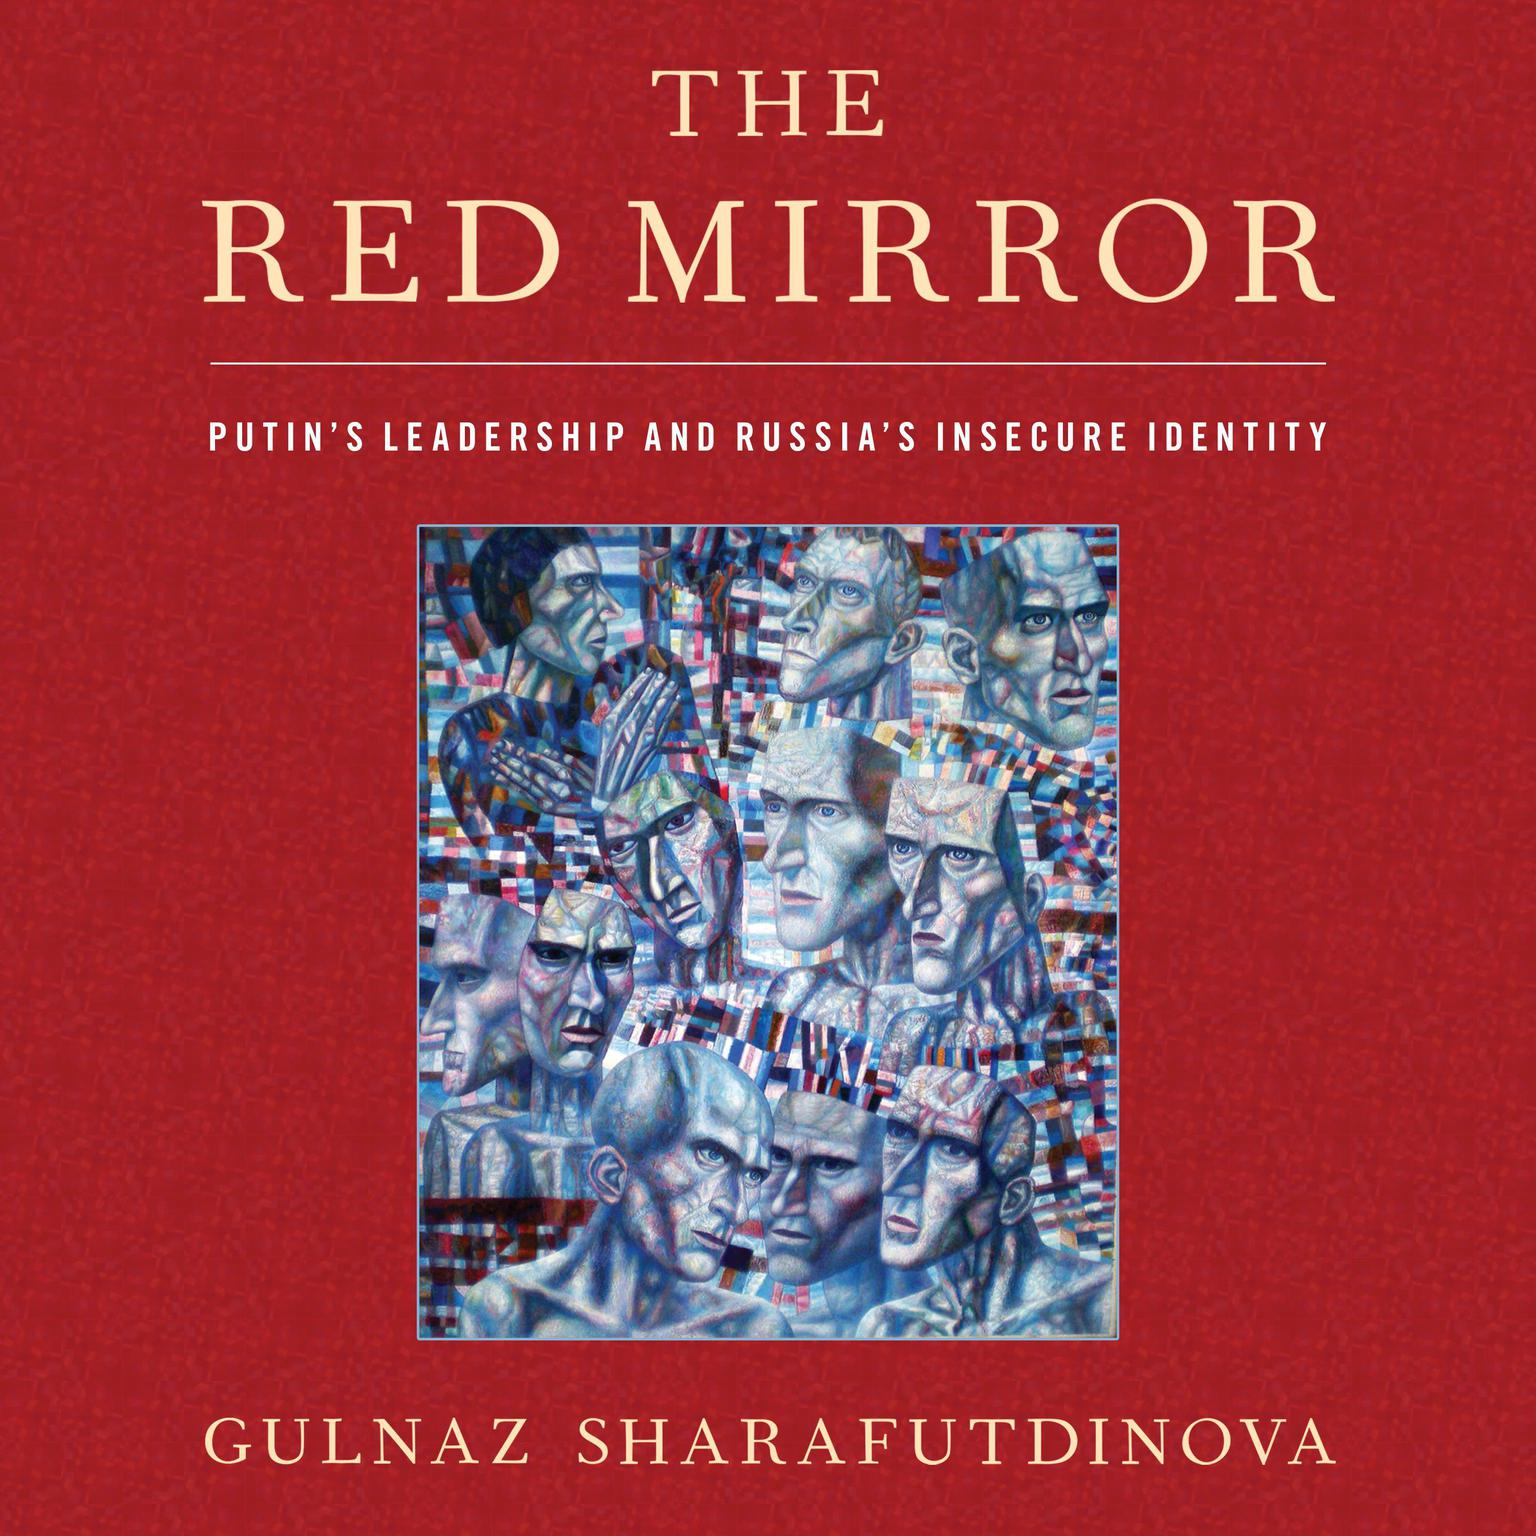 The Red Mirror: Putins Leadership and Russias Insecure Identity Audiobook, by Gulnaz Sharafutdinova